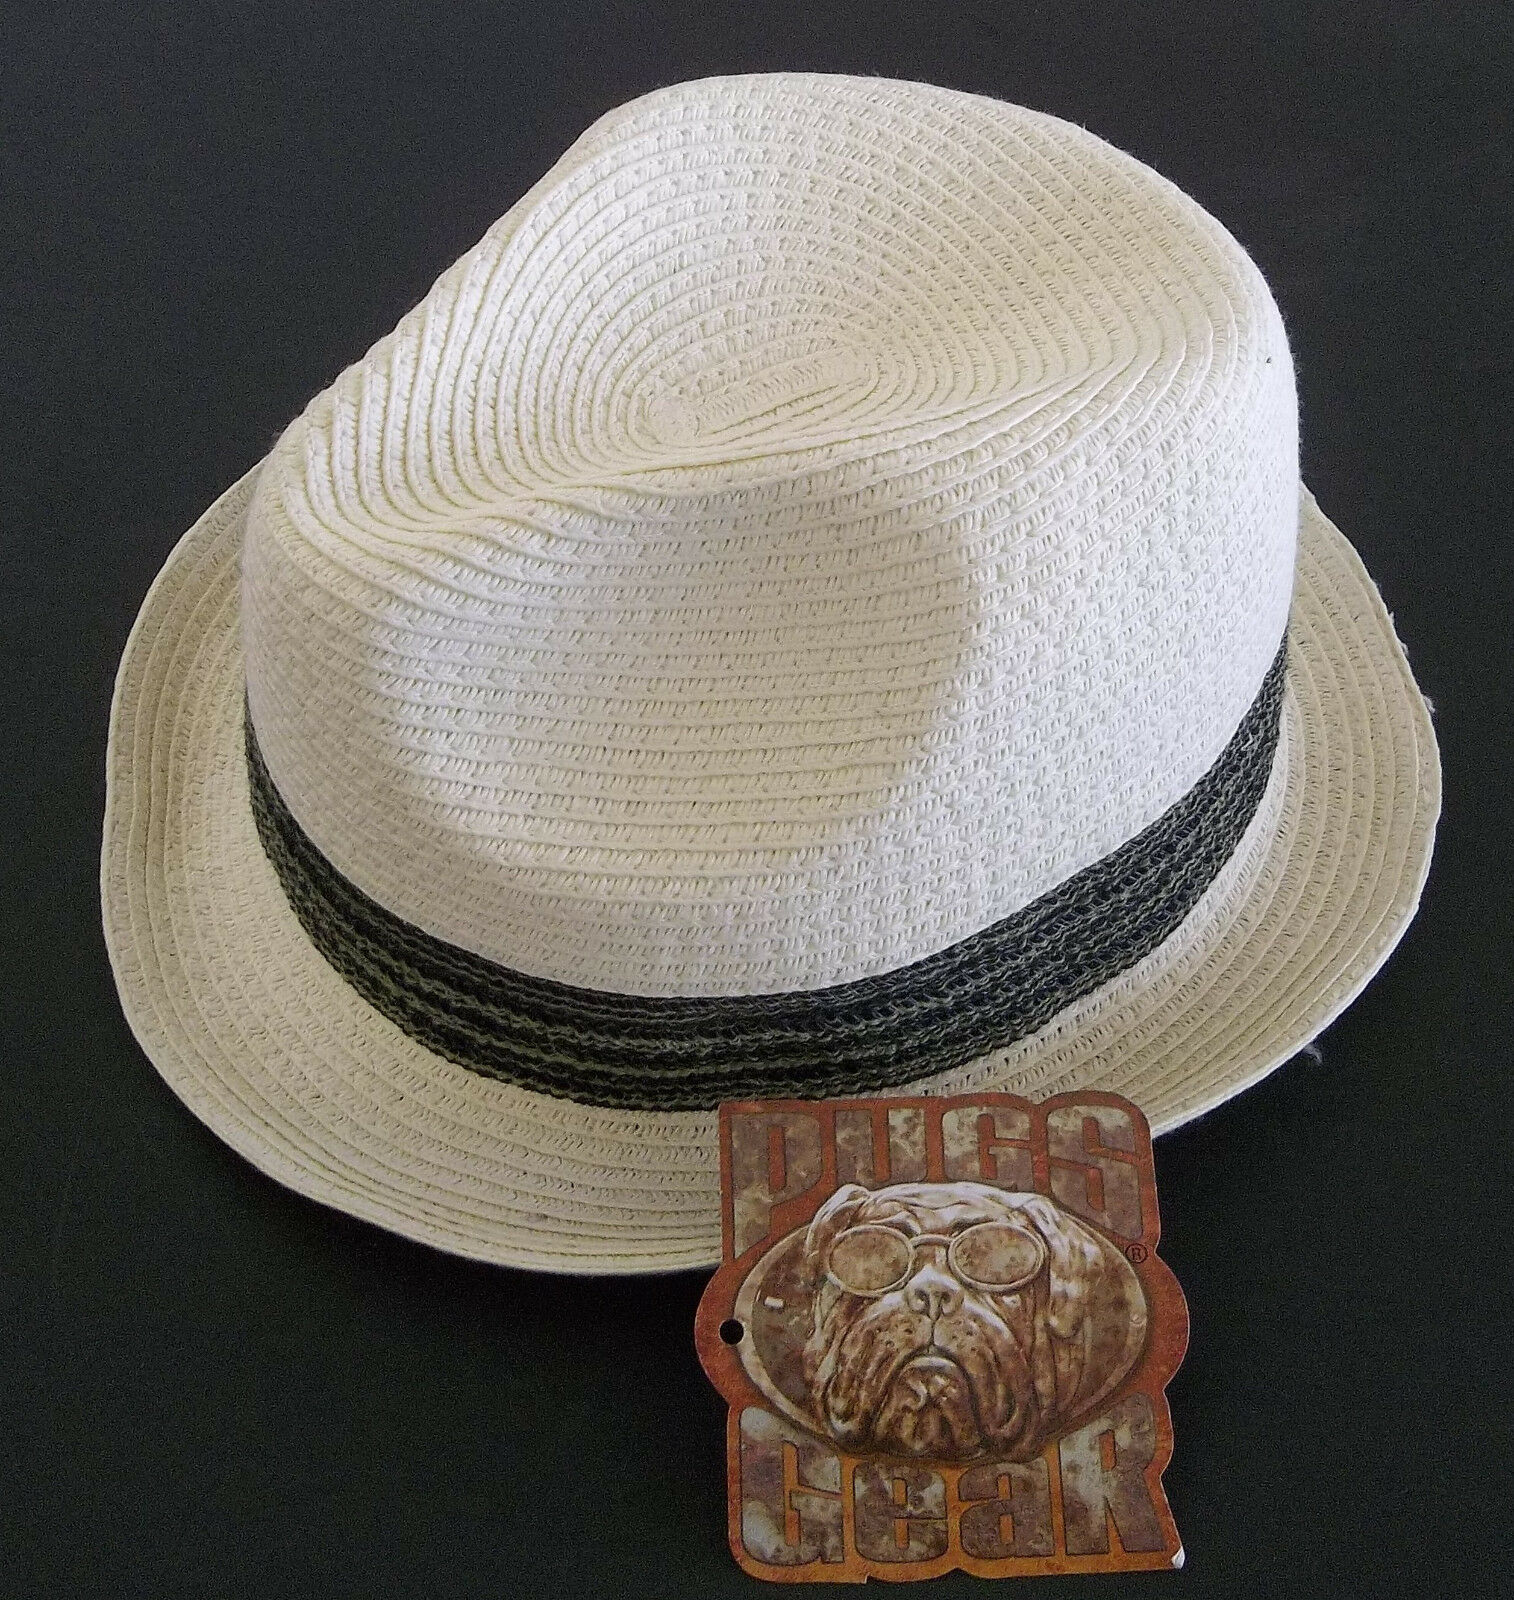 NWT Pugs Gear   Fedora  Paper Straw Straw Straw hat  Unisex color Ivory One Size fits most b8ecc8